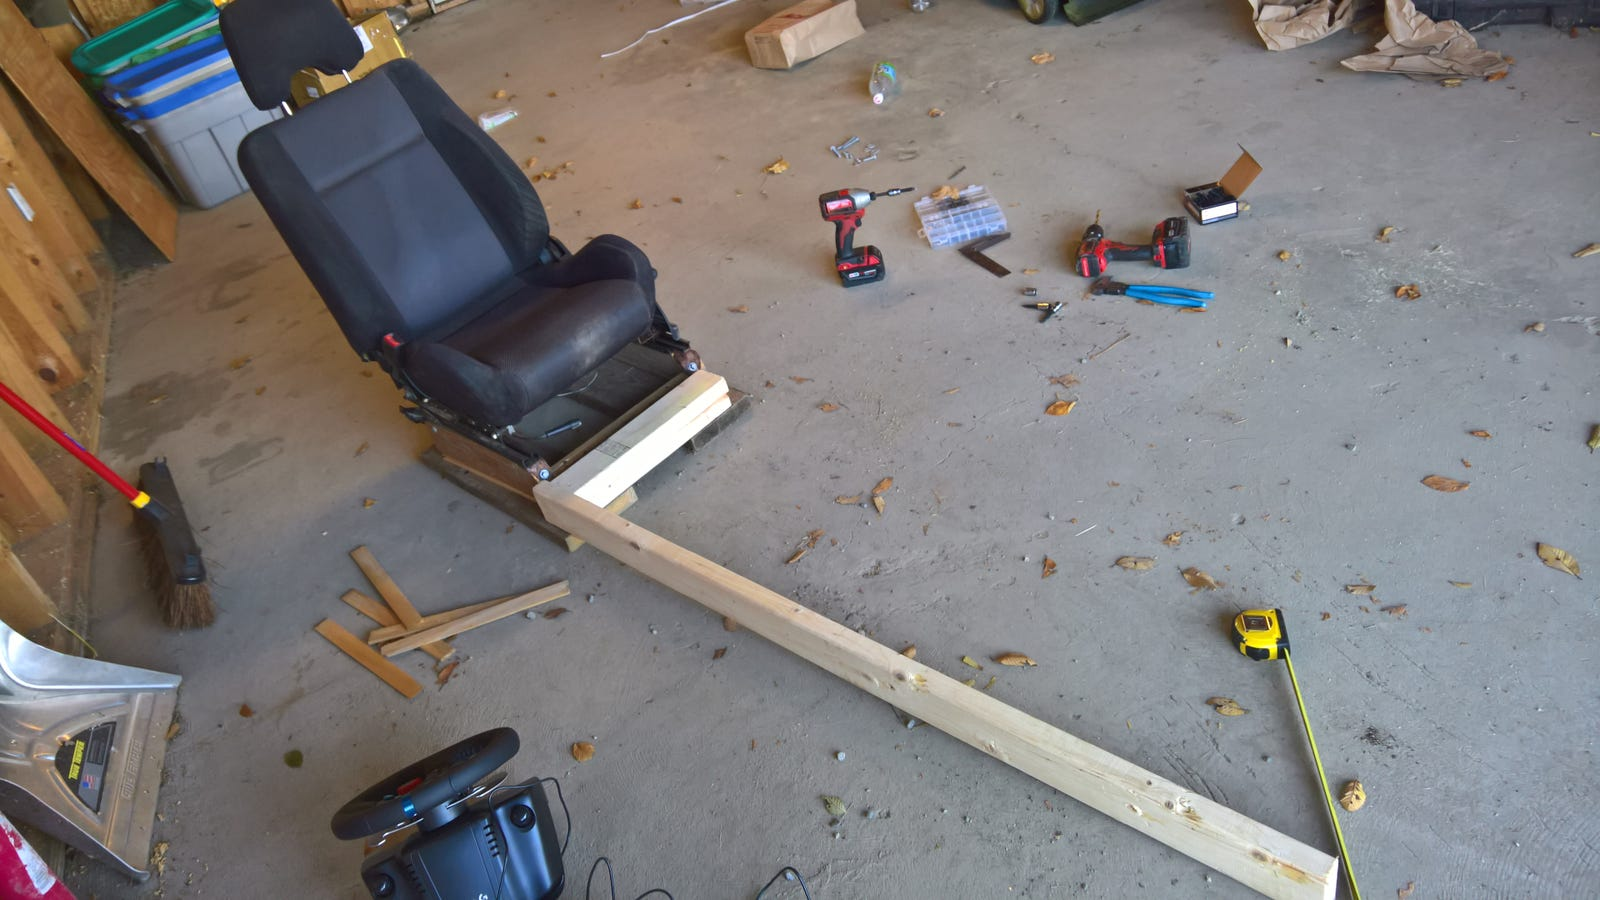 Gonna screw it down to a sub platform and then build the pedal box off that...